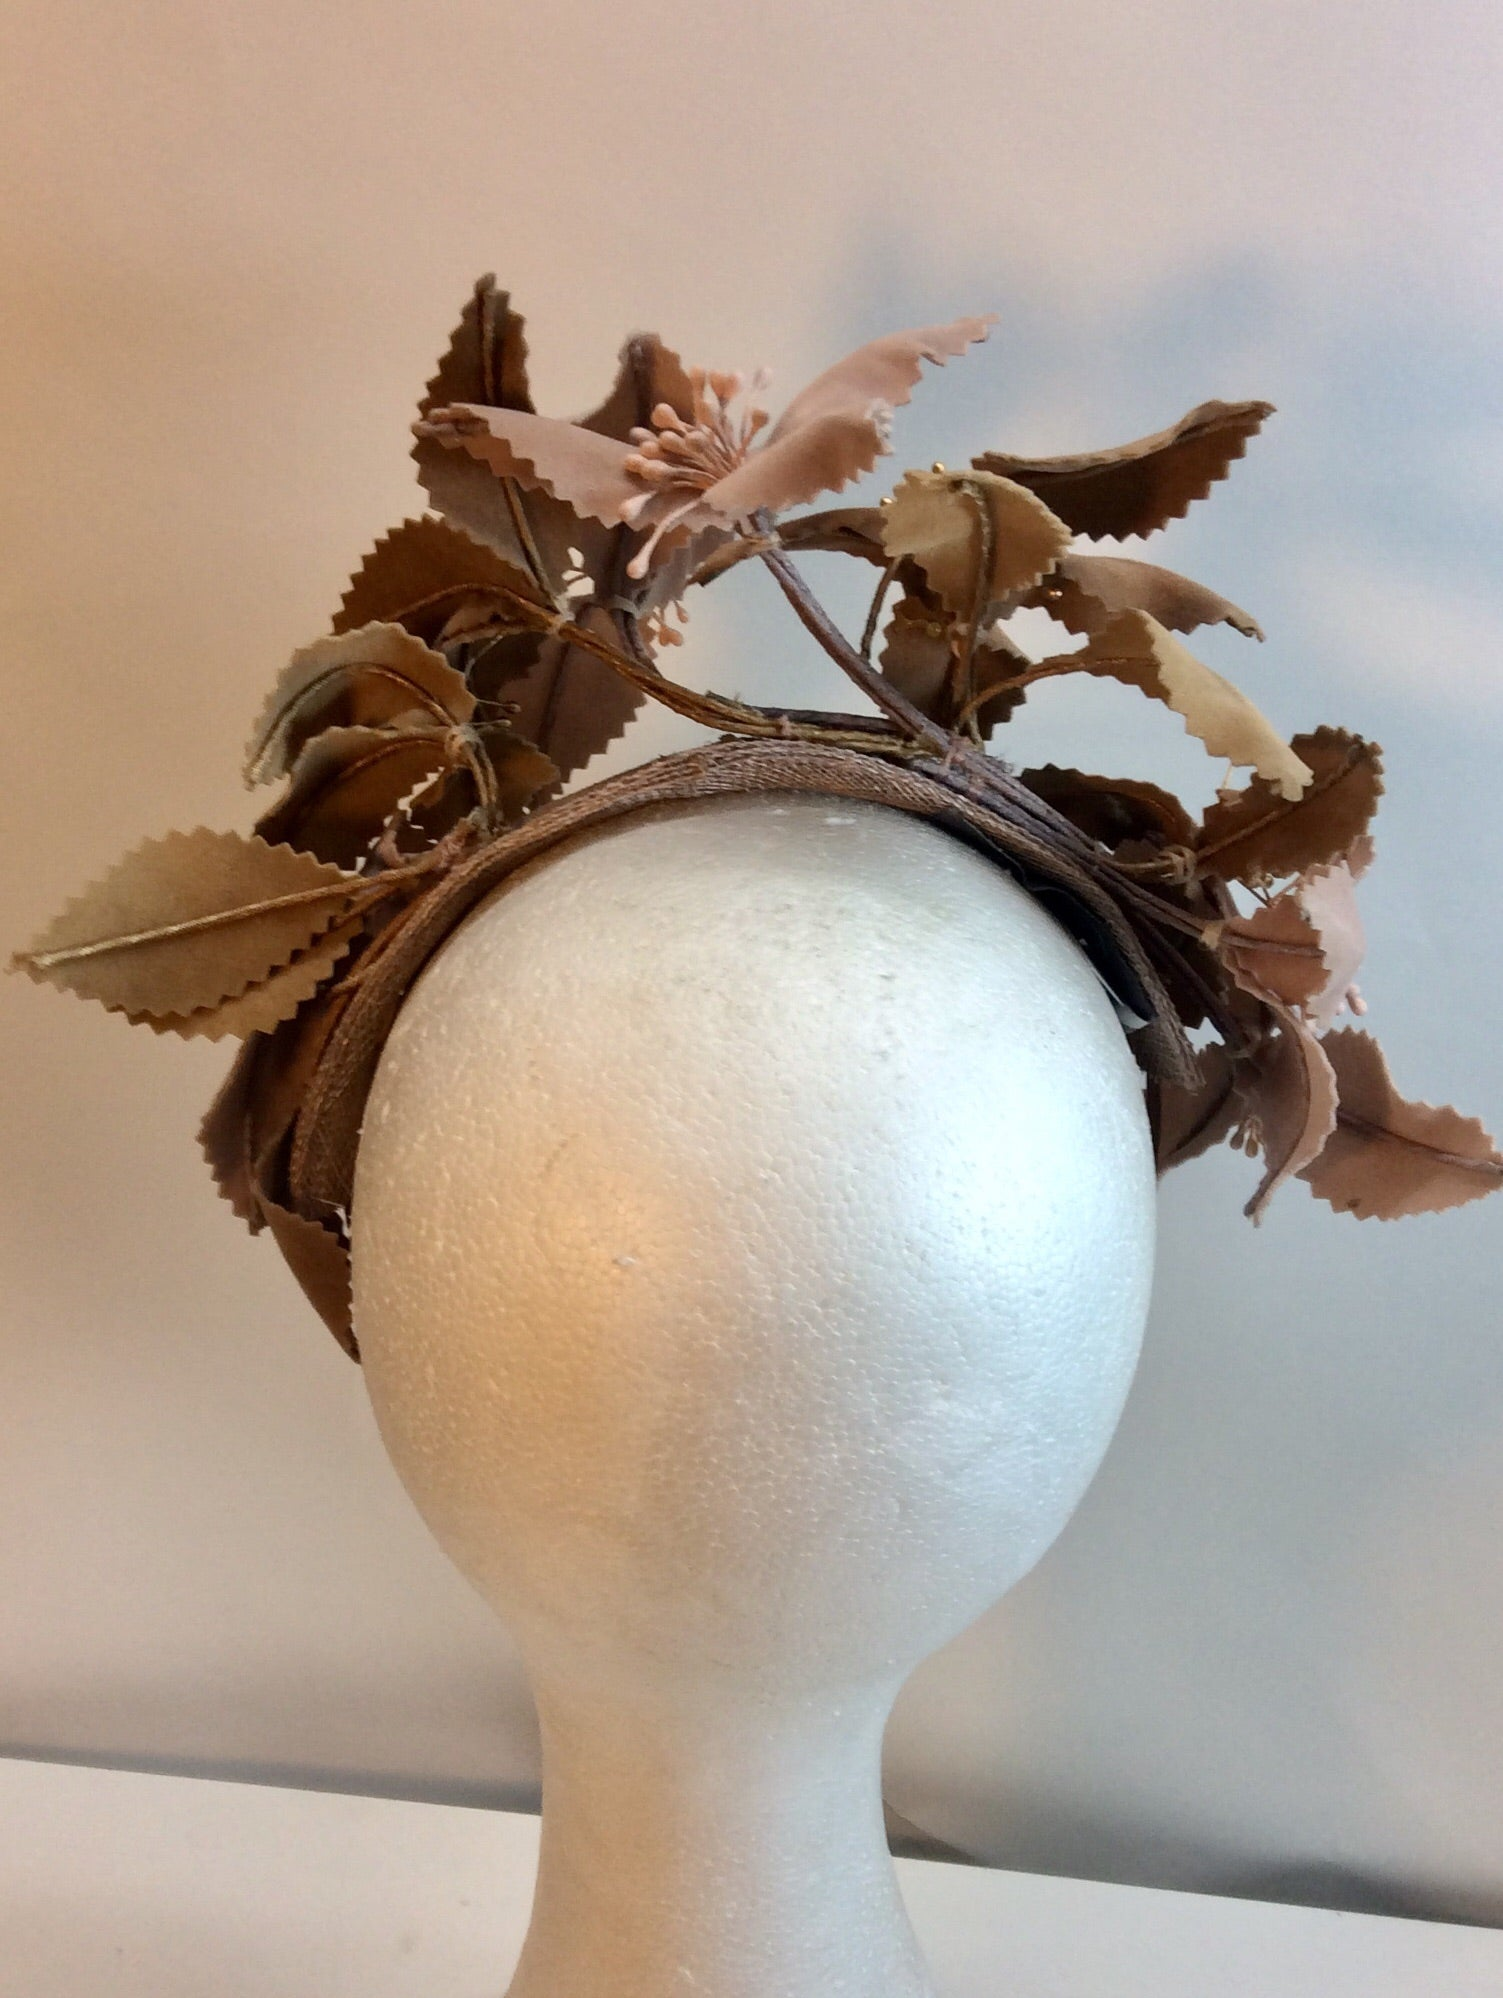 Floral fascinator in shades of caramel and tan